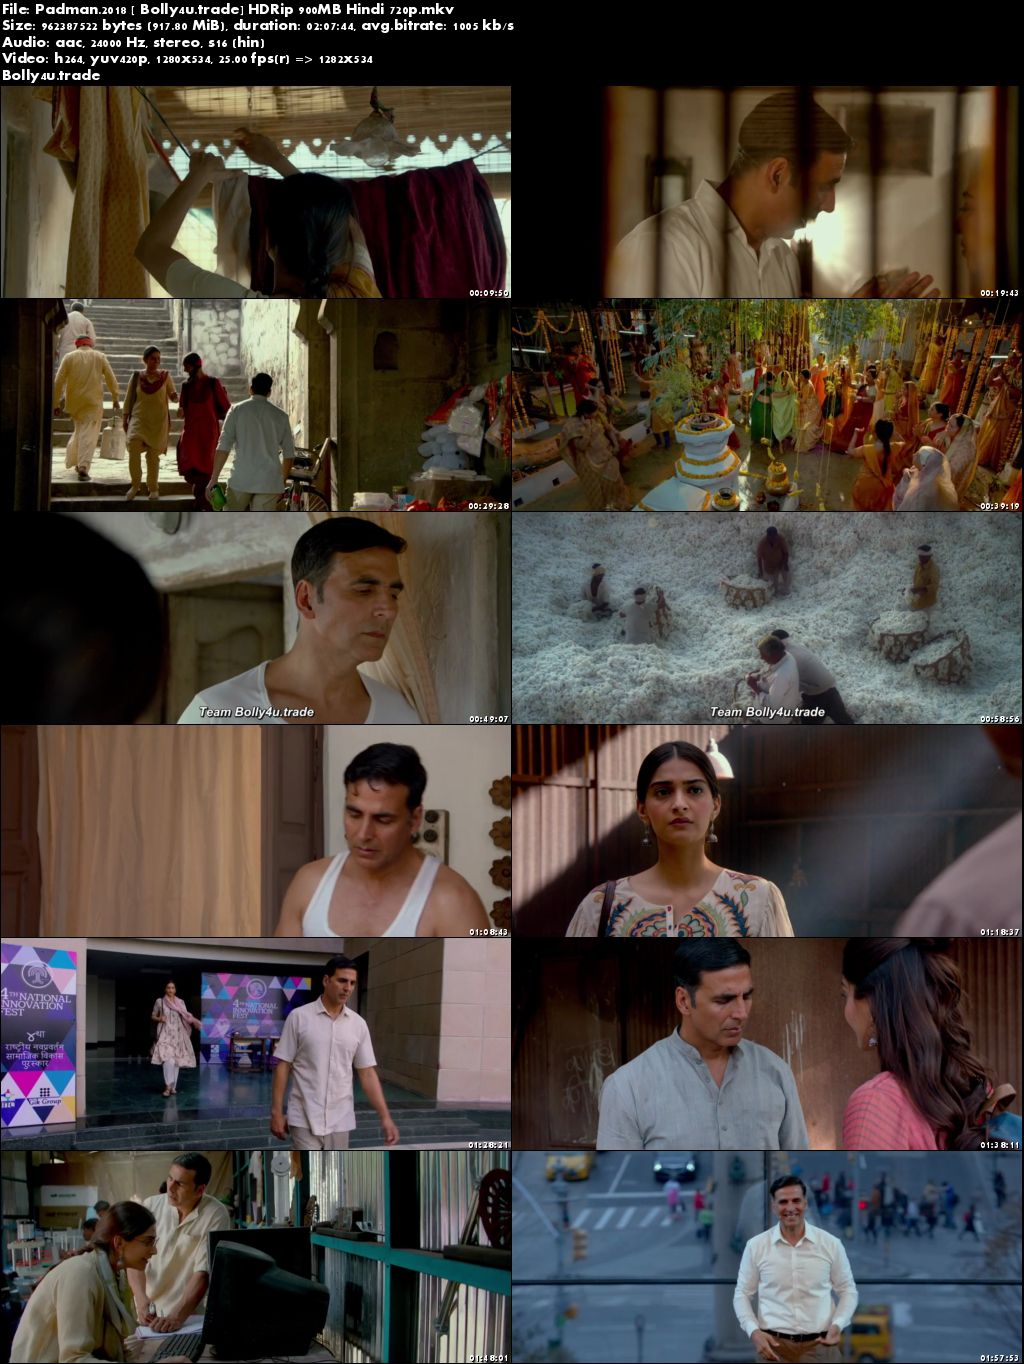 Padman 2018 HDRip 900Mb Full Hindi Movie Download 720p